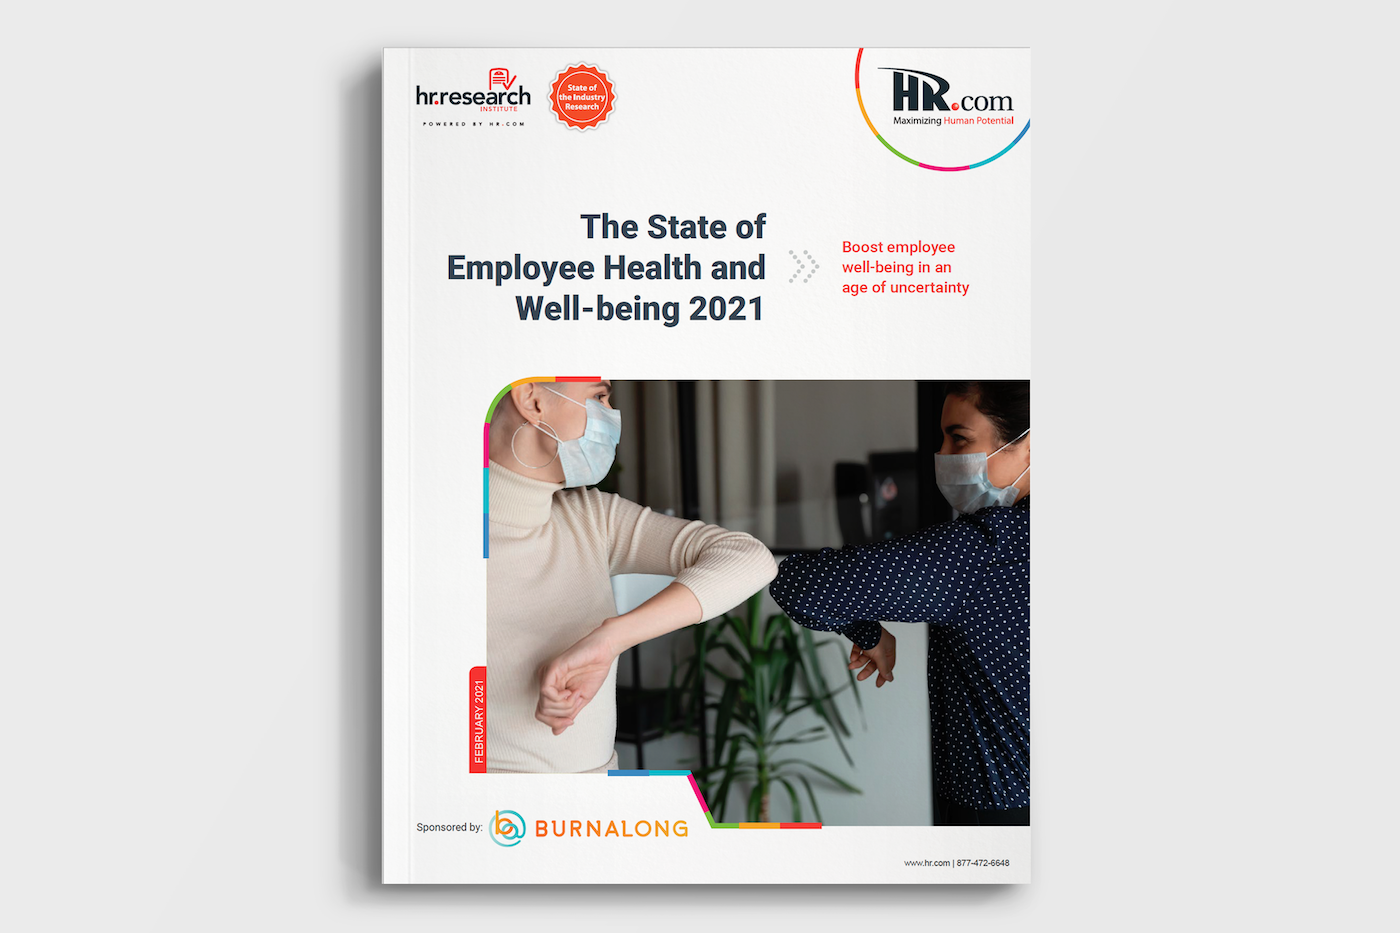 HR.com state of employee health and well-being